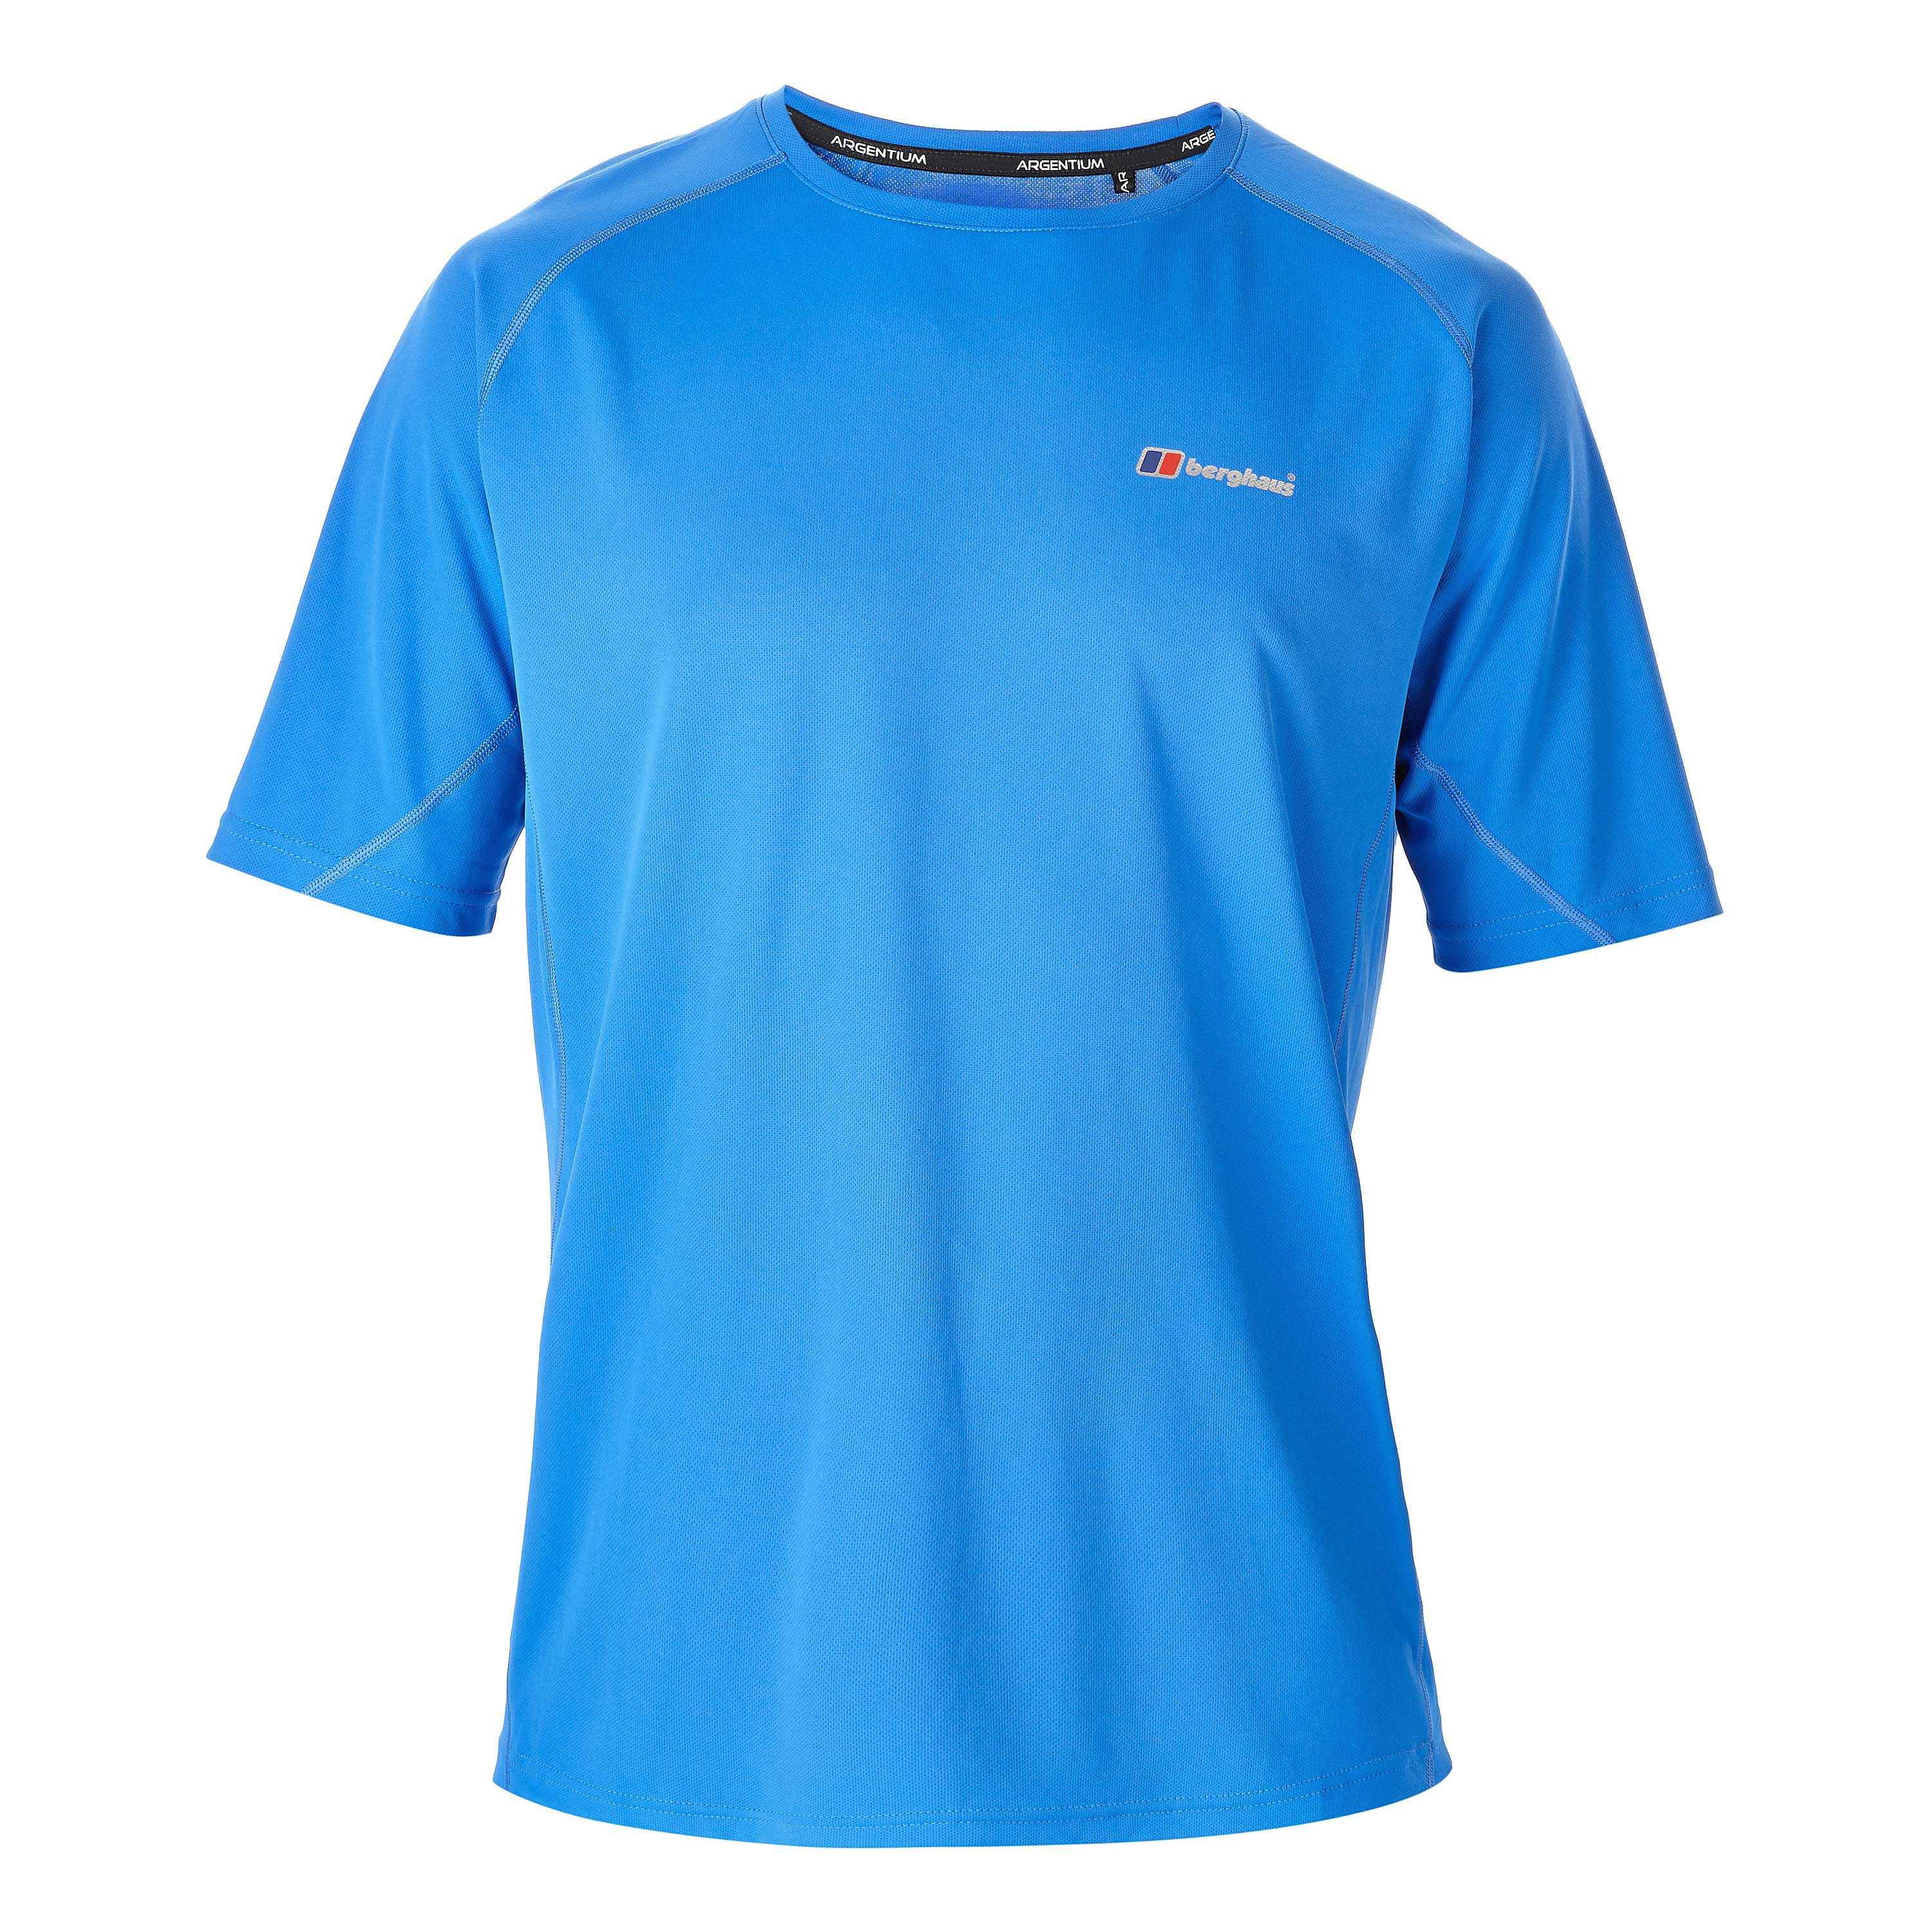 Berghaus T-Shirt Crew Neck Technical blue lemonade